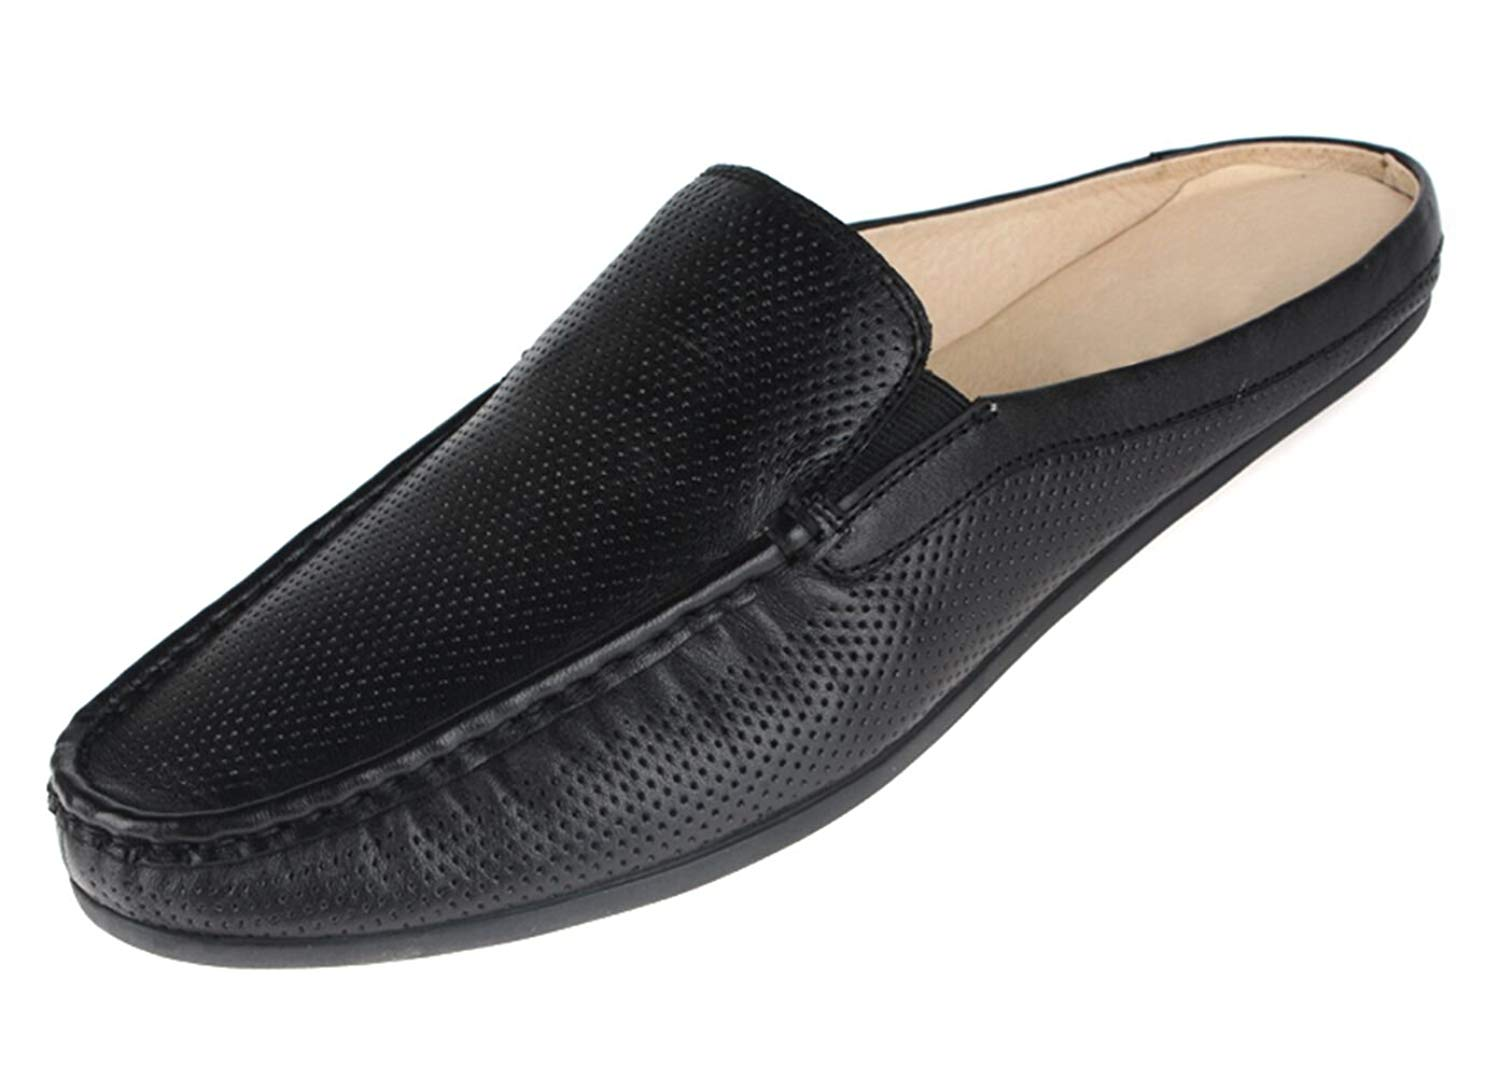 13978db35c0 Get Quotations · Santimon Men Leather Dress Mules Breathable Punching Open  Back Slippers Slip-On Shoes Black White